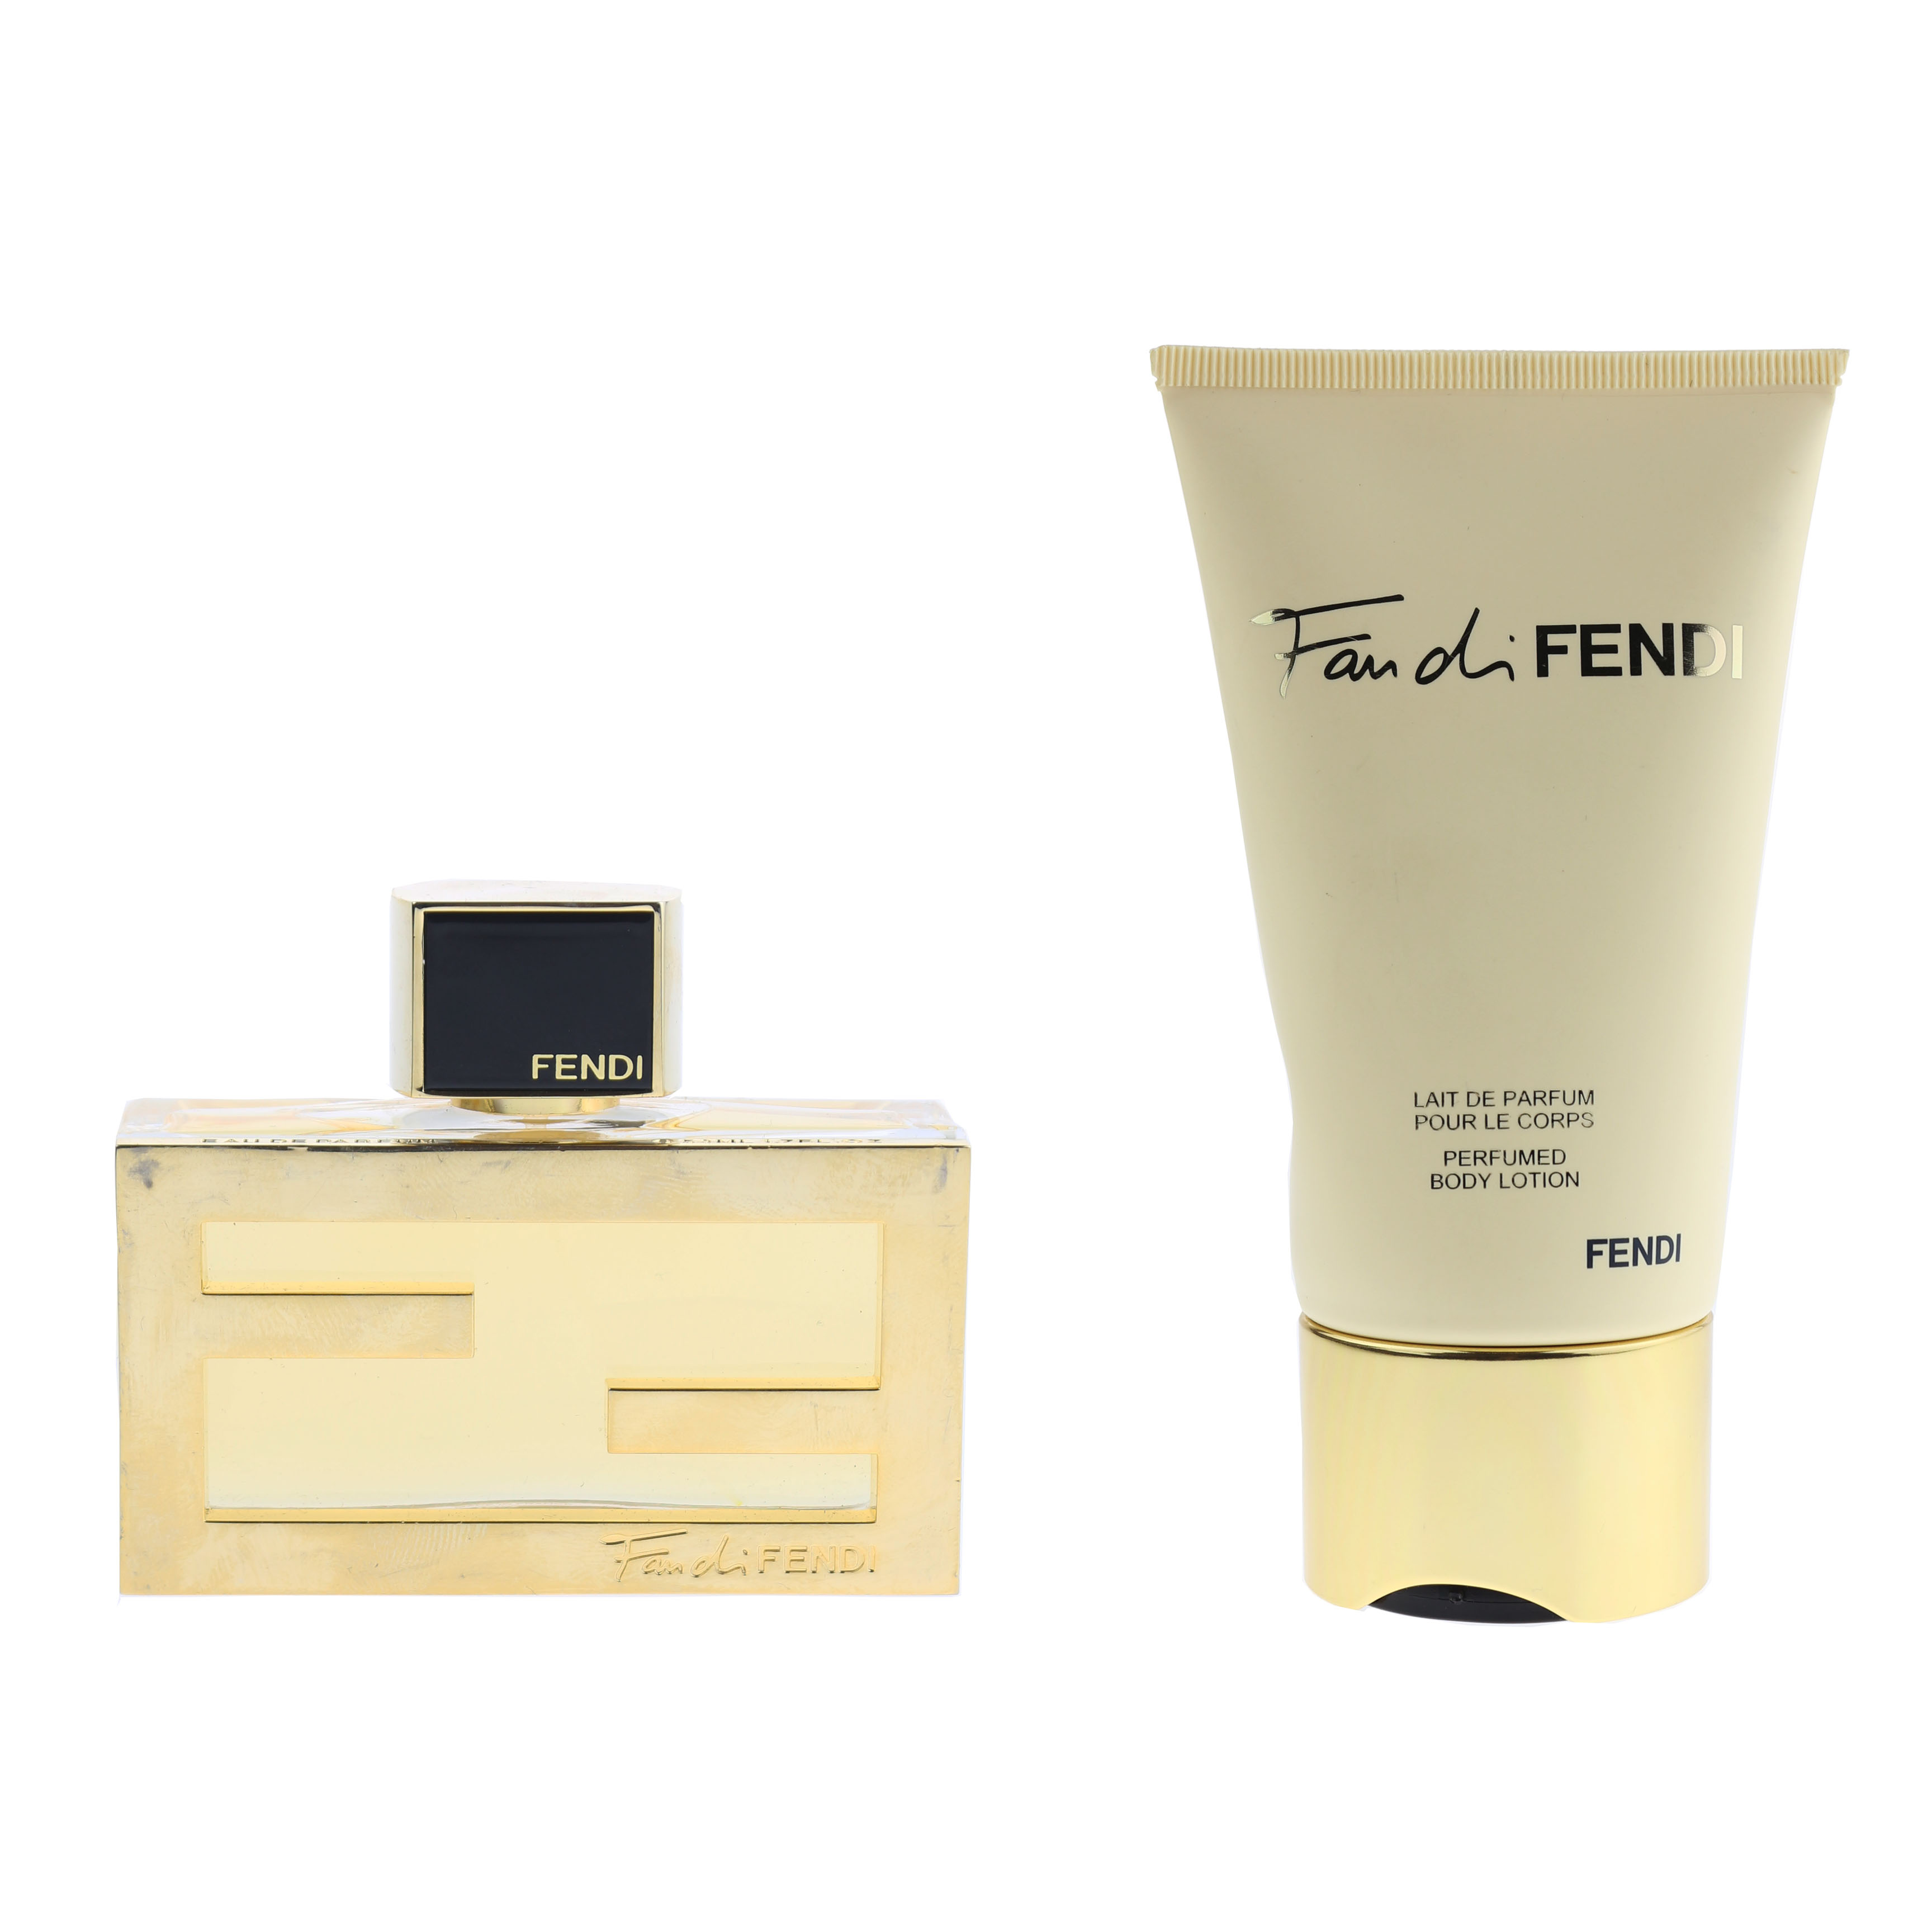 Fendi Fan Di Fendi' Eau De Parfum & Body Lotion 2-Piece Set